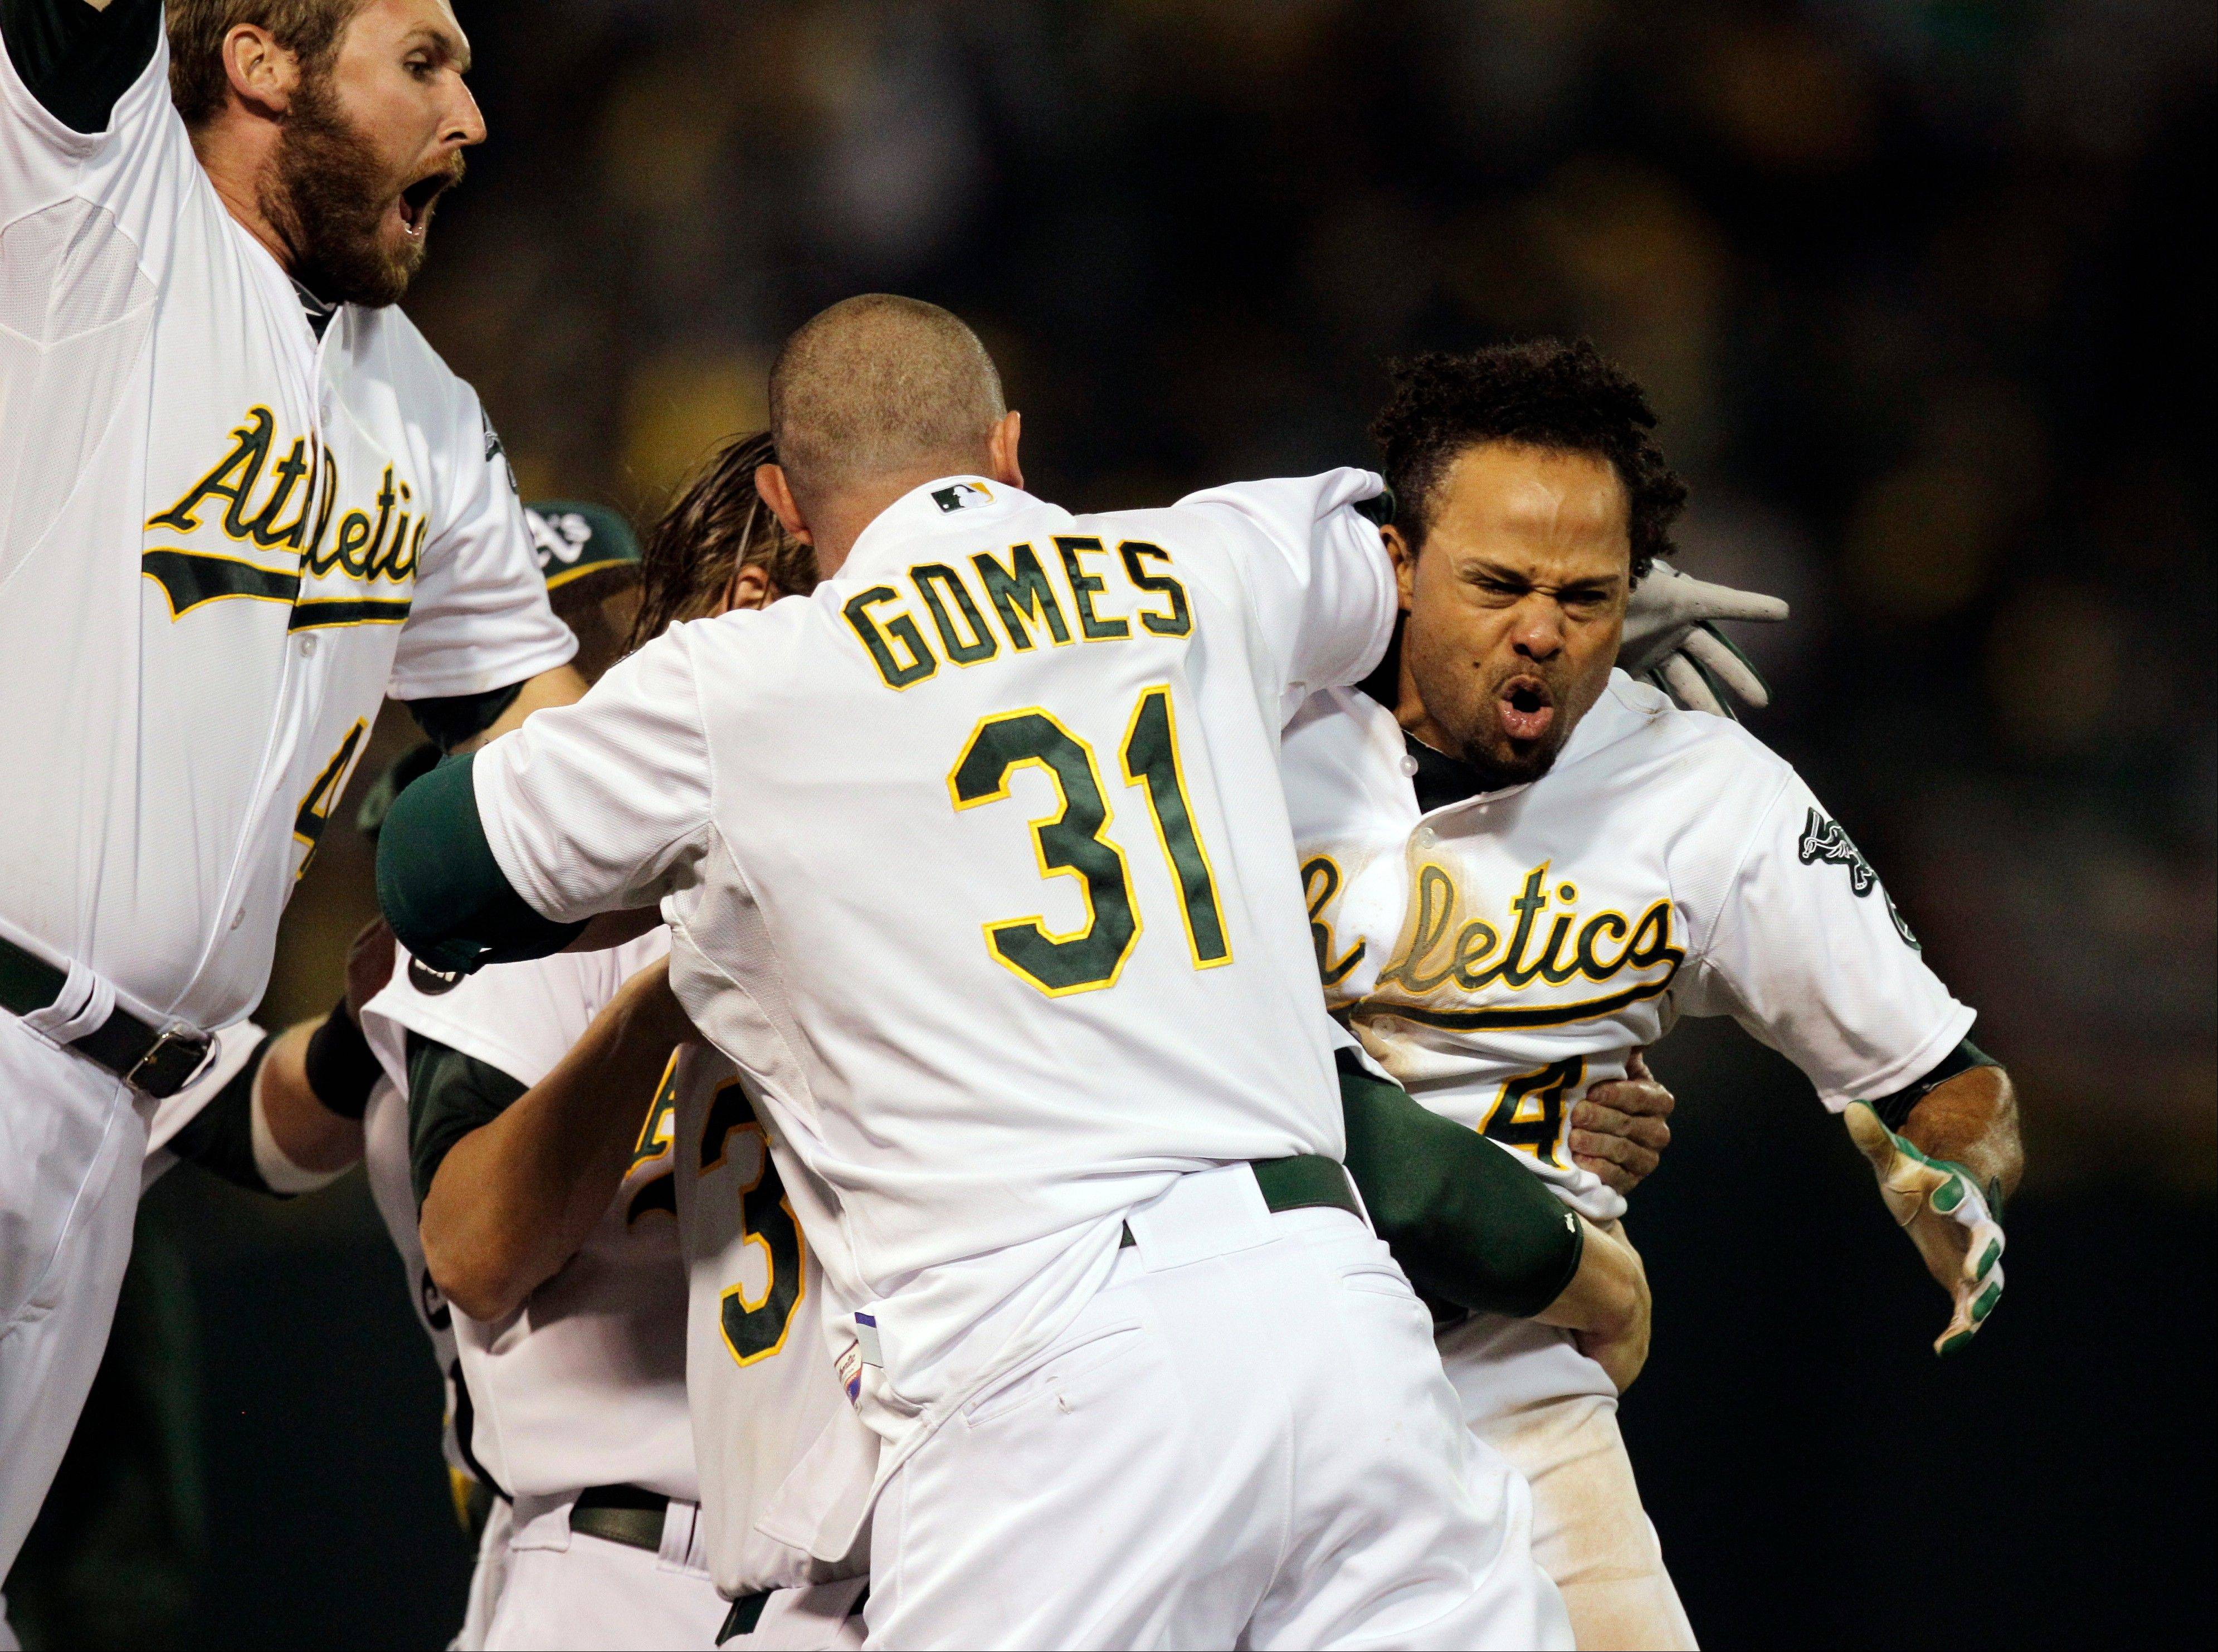 Oakland Athletics left fielder Coco Crisp, right, celebrates Wednesday after hitting a single to score Seth Smith and win the game 4-3 in Game 4 of an American League division baseball series against the Detroit Tigers in Oakland, Calif.